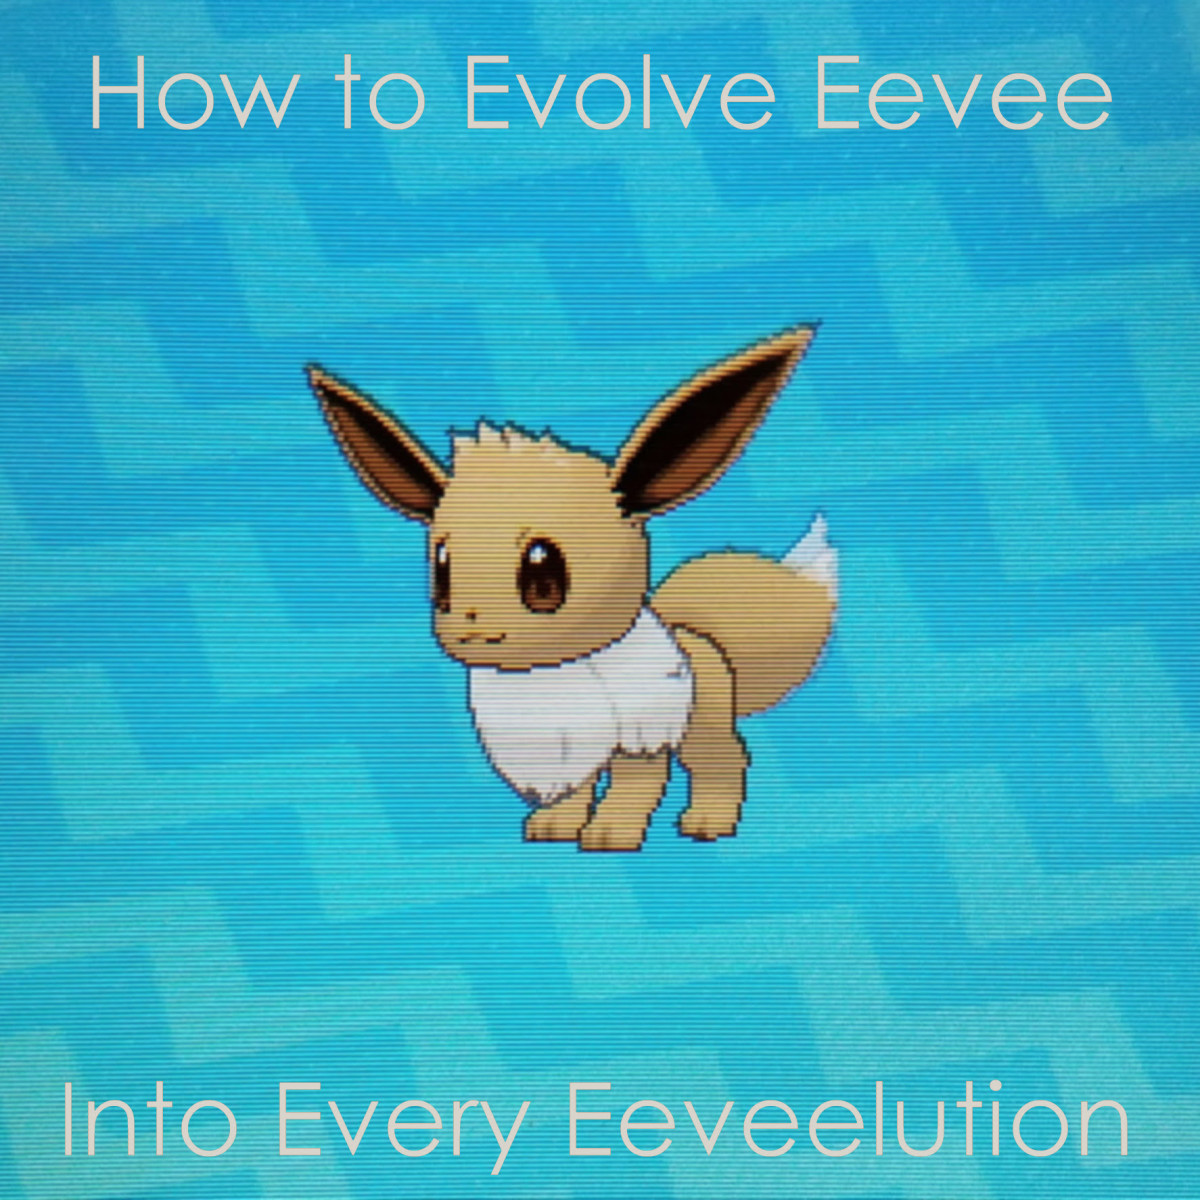 How to Evolve Eevee in the Pokémon Games